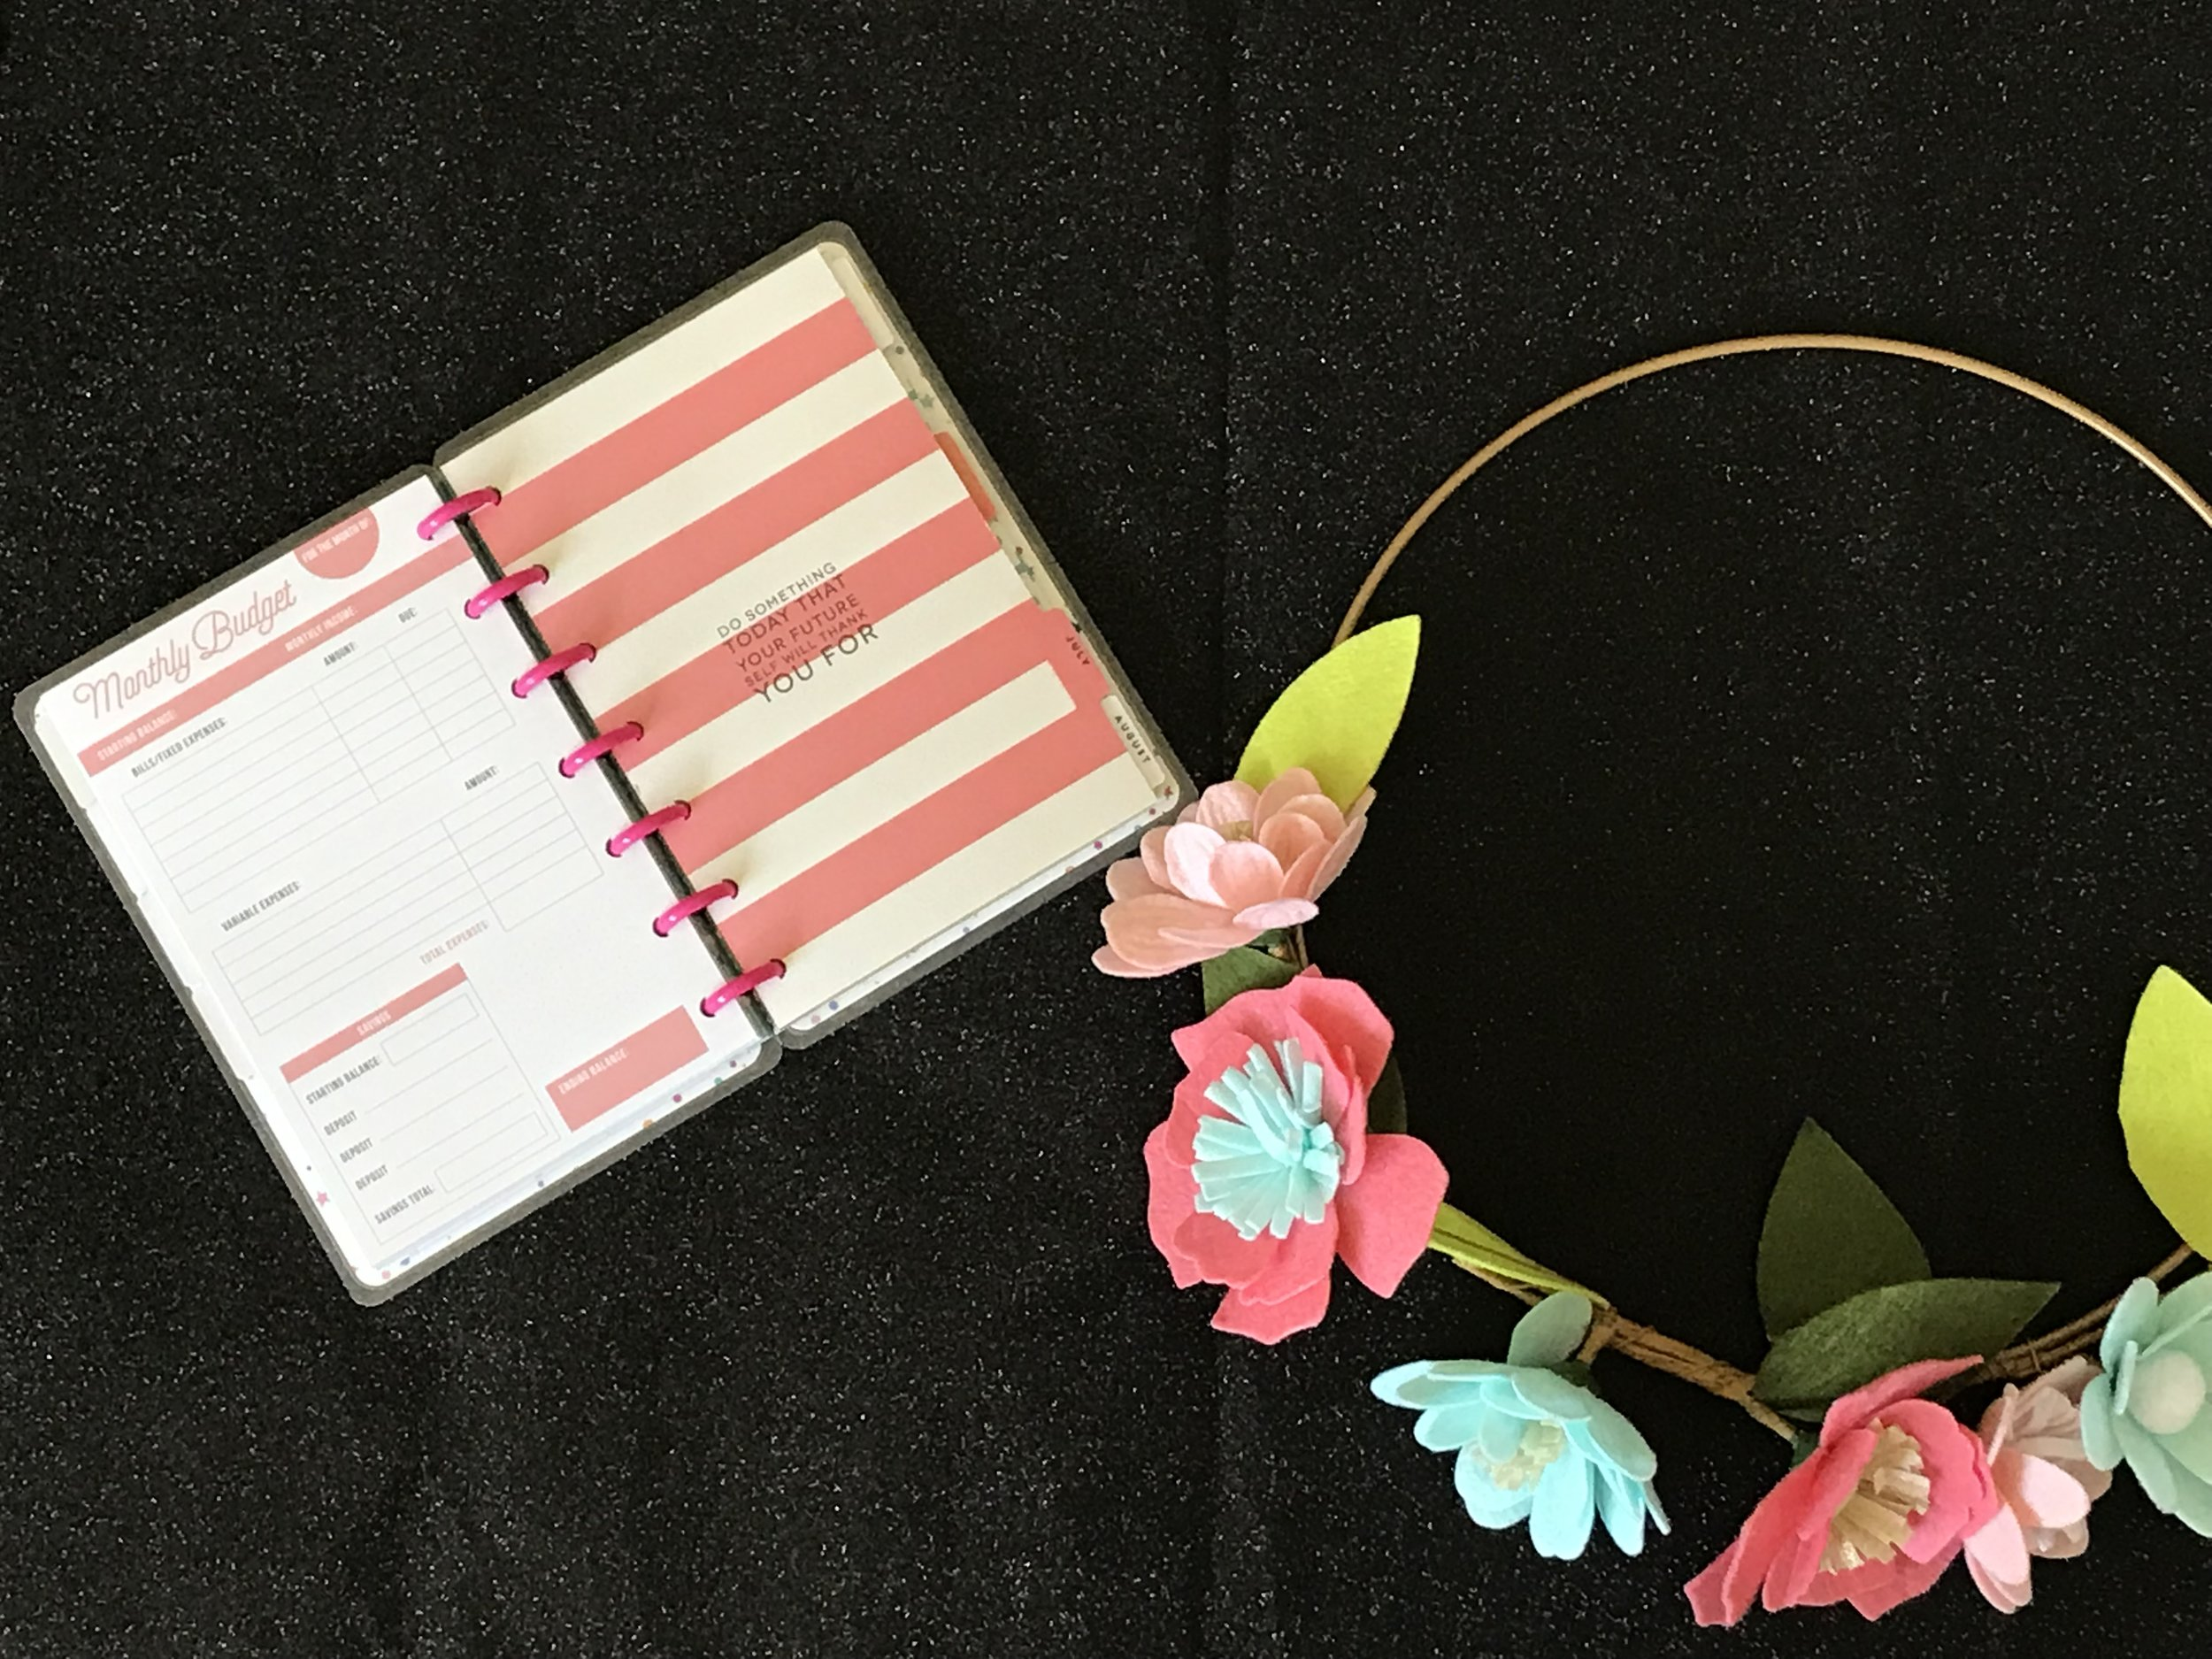 PGP Belle Boss Holly : My favorite planner item right now is the Happy Planner Notes that I combined with the budget planner insert to try to become more budget conscious….WISH ME LUCK & LEAVE BUDGET TIPS BELOW